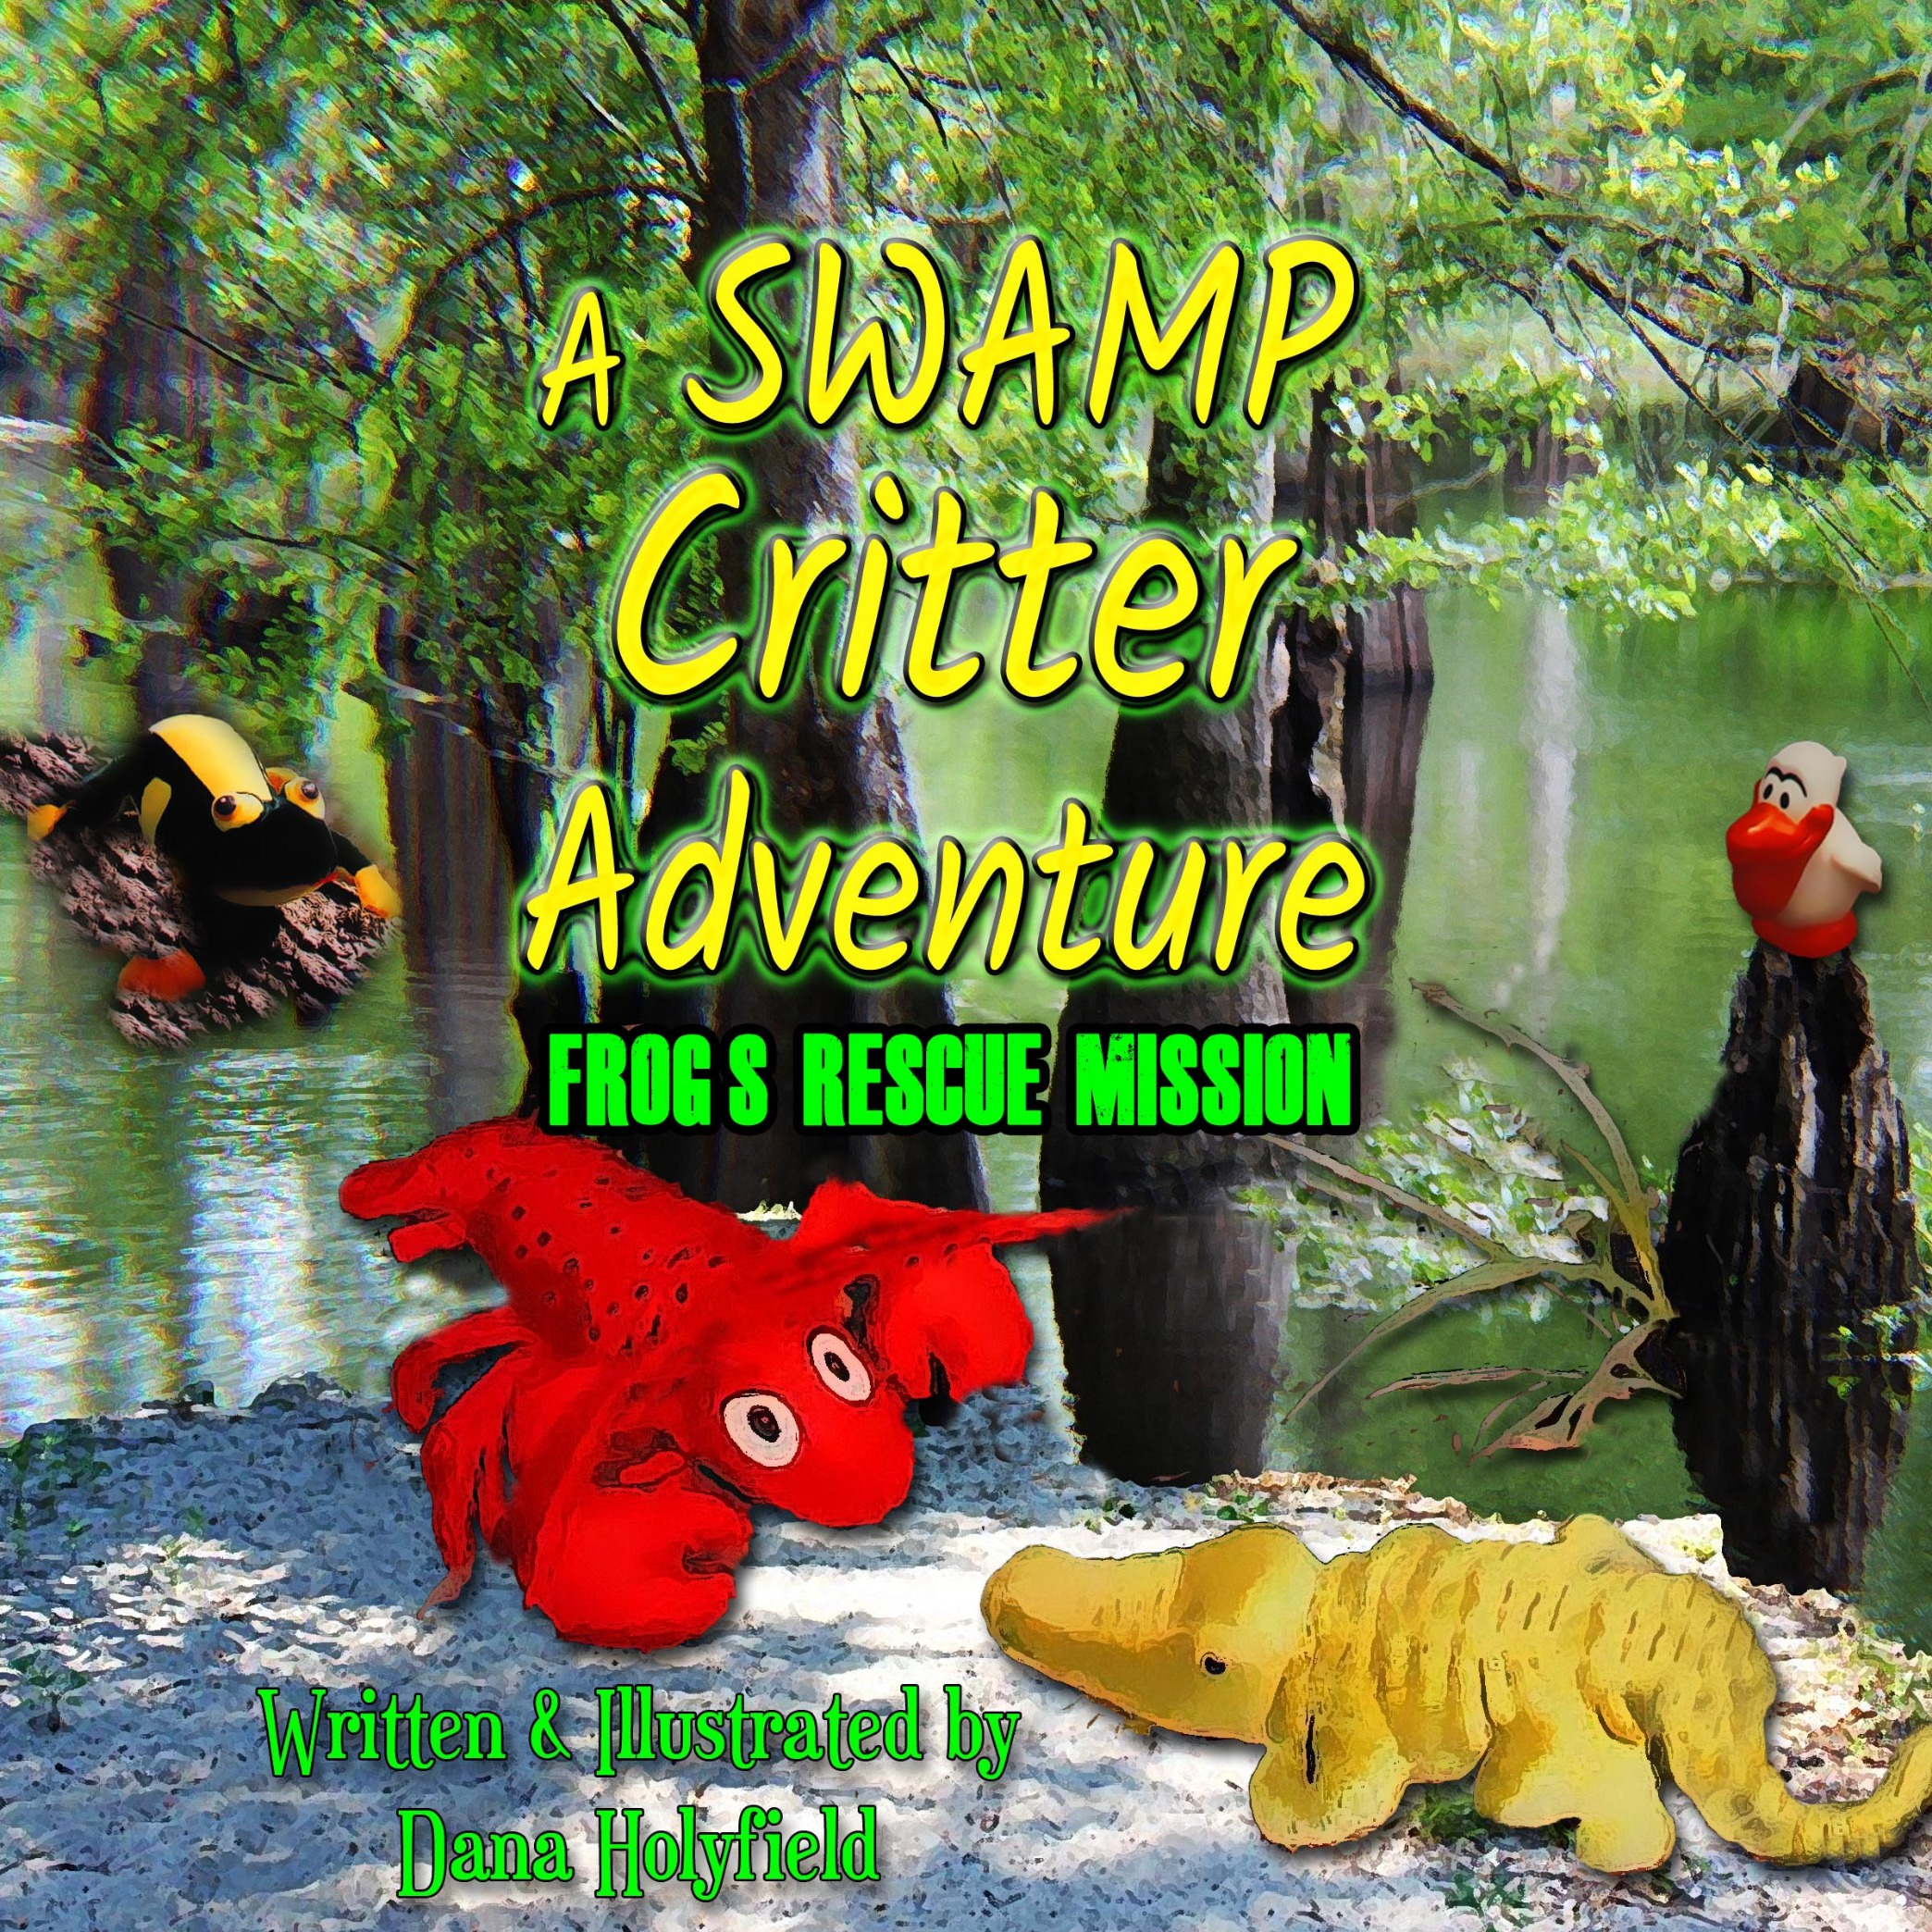 A Swamp Critter Adventure Frog's Rescue Mission Audio Book For Kids by Dana Holyfield